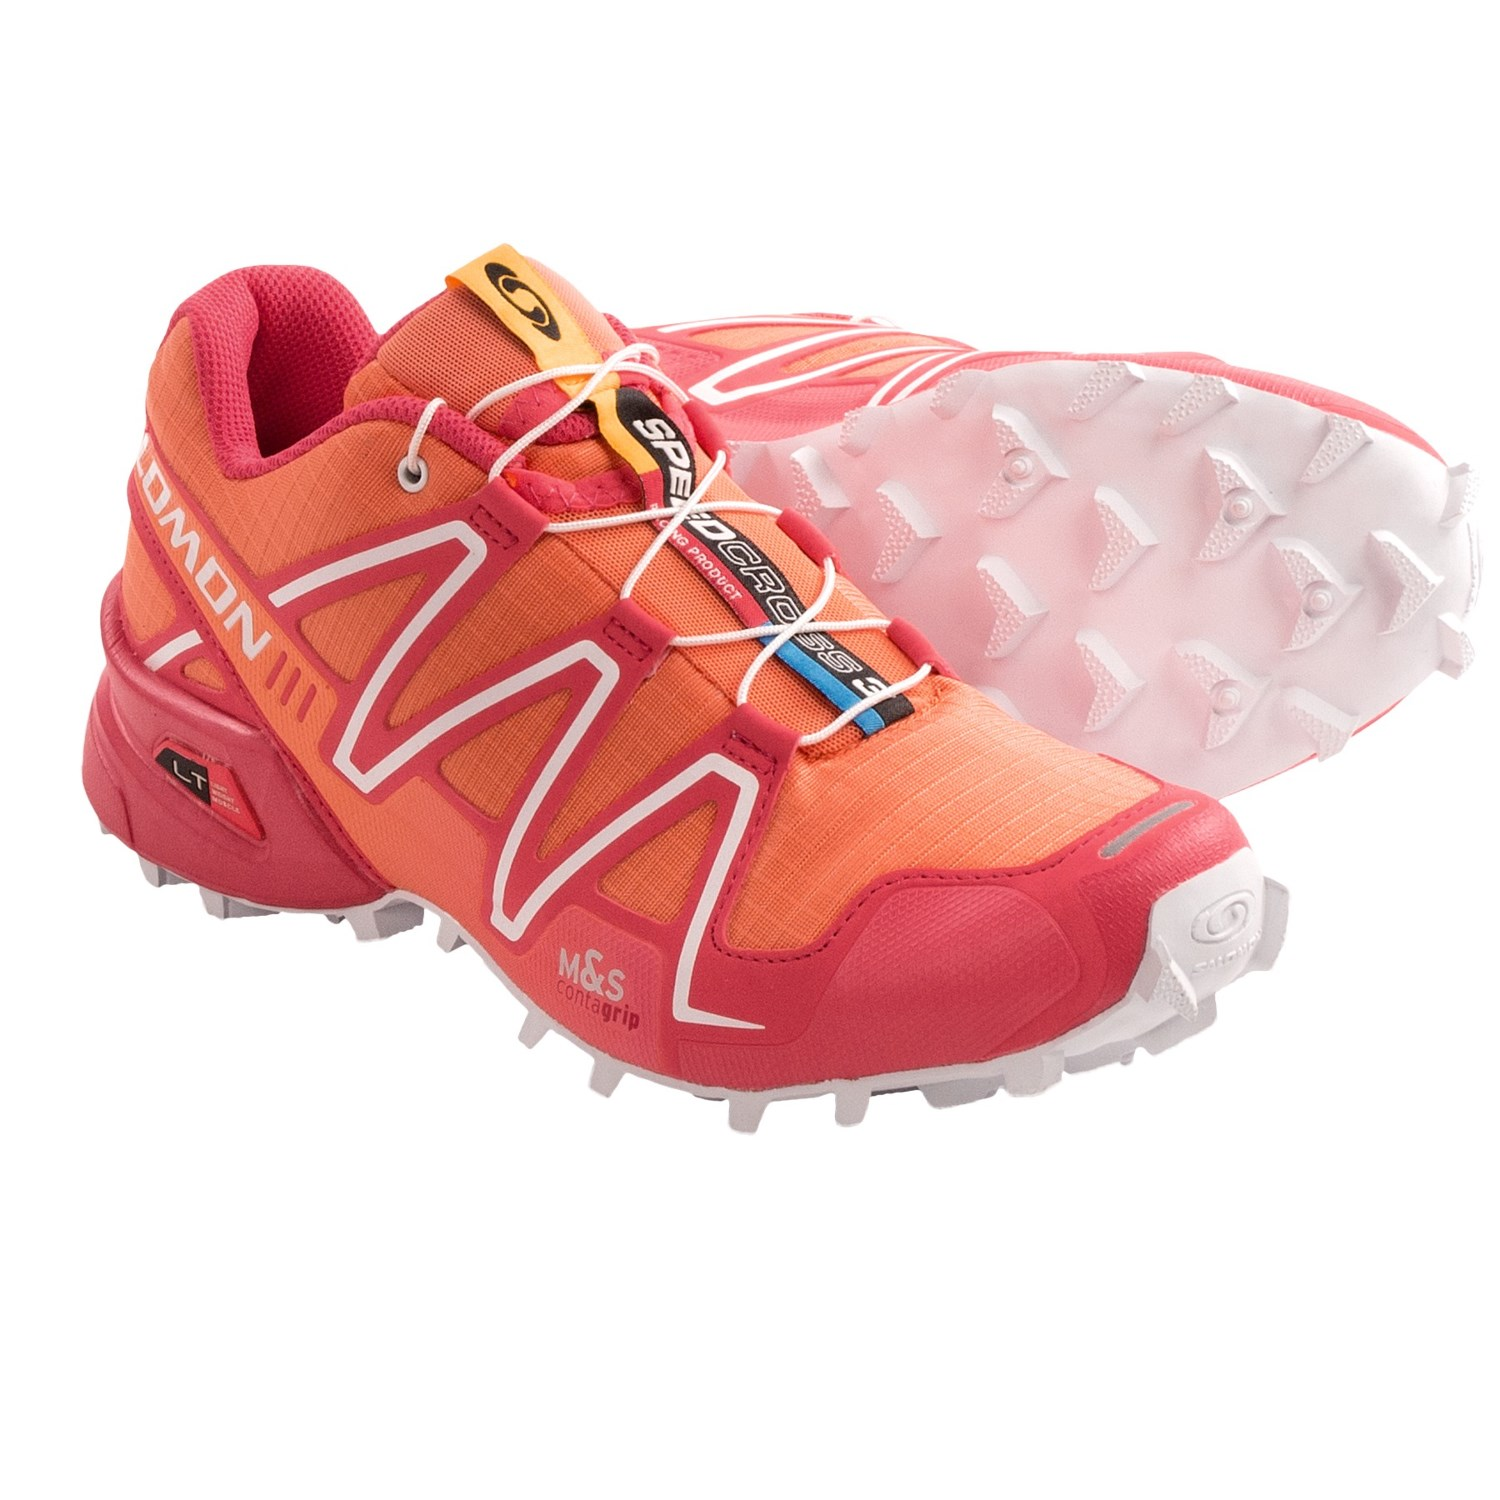 Salomon Women's Hiking Shoes & Boots | DICK'S Sporting Goods